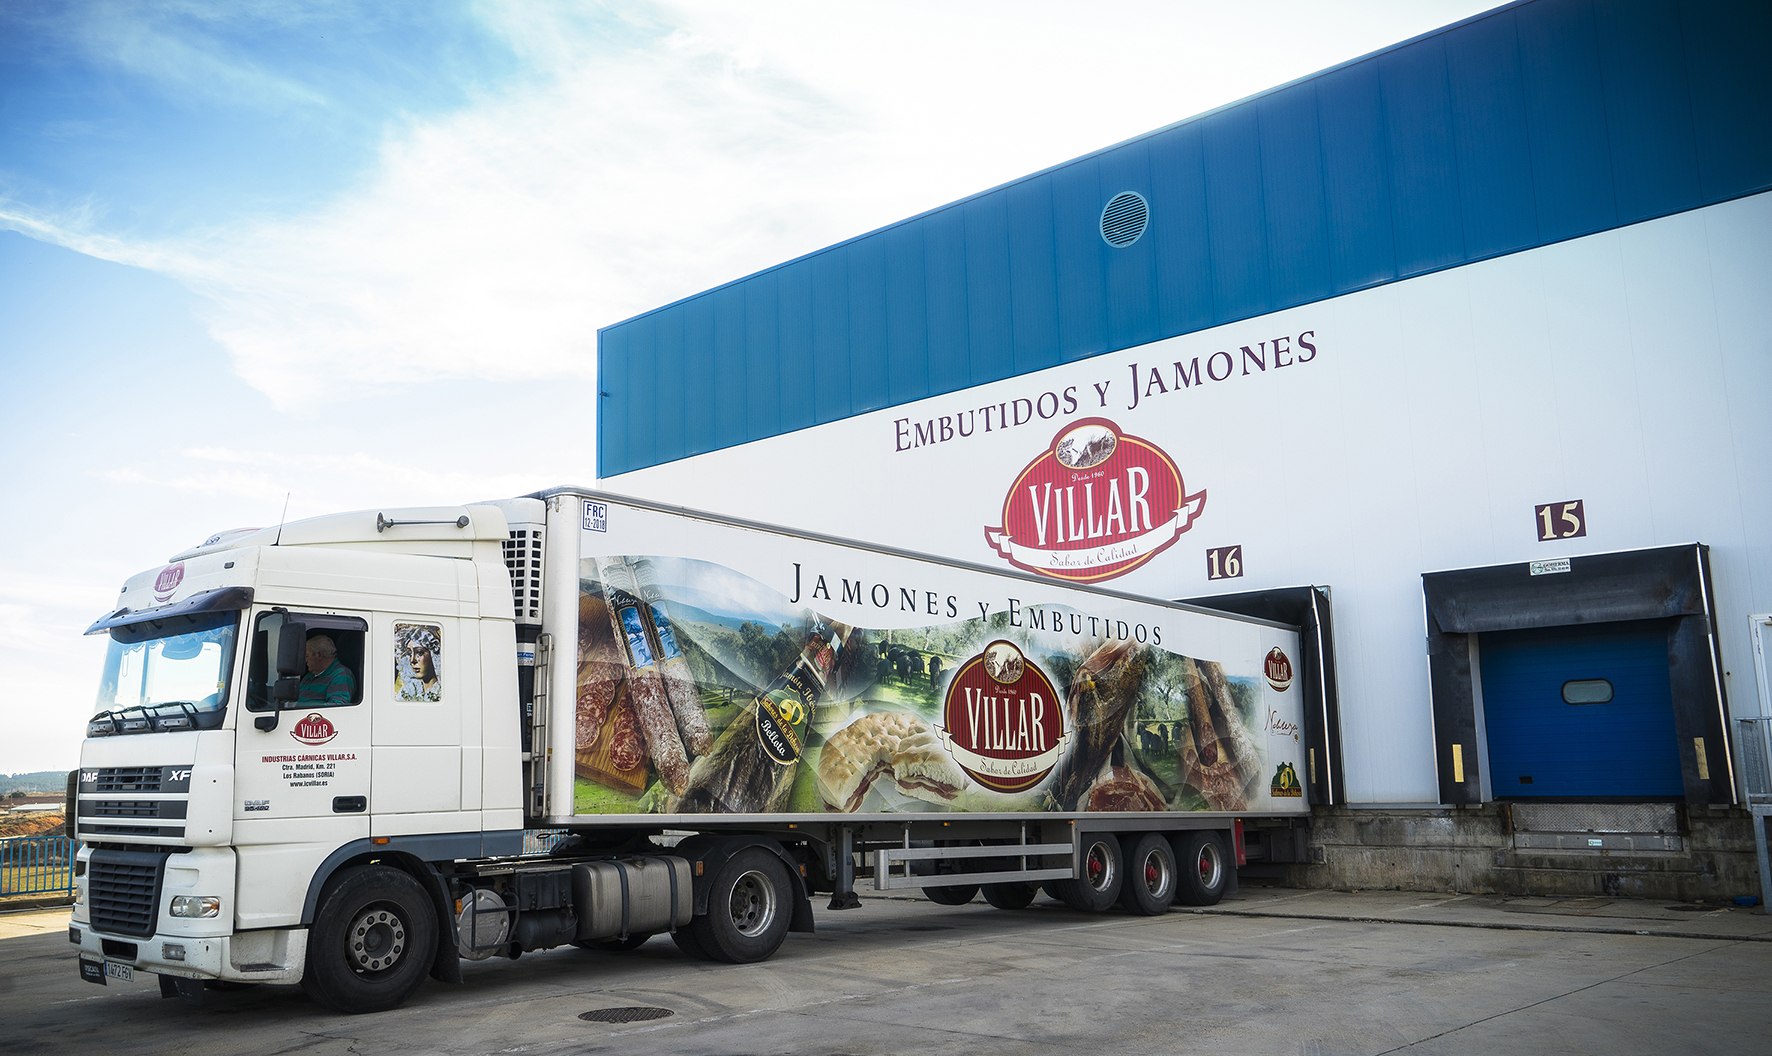 Industrias Cárnicas Villar Reinforces Its Industrial Structure Co-financed By The Junta De Castilla Y León, Through The European Agricultural Fund For Rural Development (EAFRD)